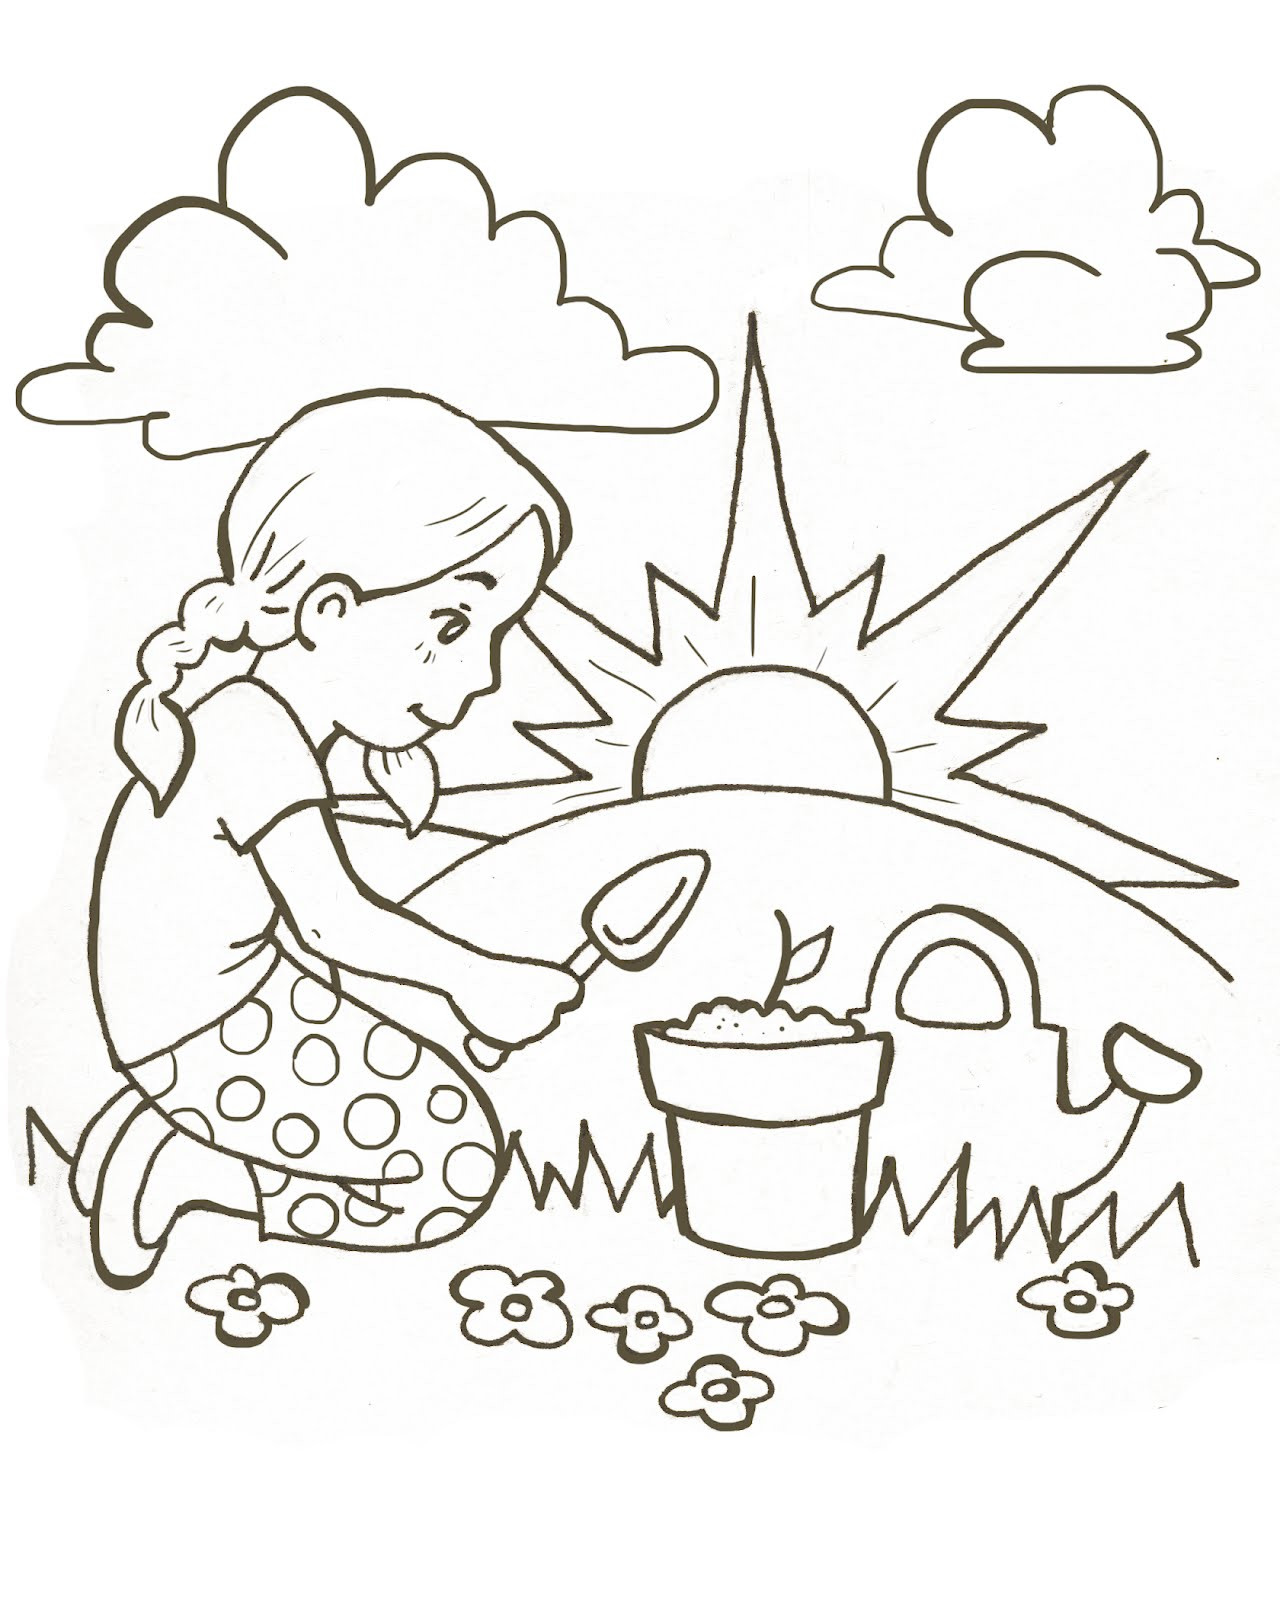 Best ideas about Faith Coloring Pages For Kids . Save or Pin ILLUSTRATION ALCHEMY LDS Mobile Apps Coloring Pages Now.